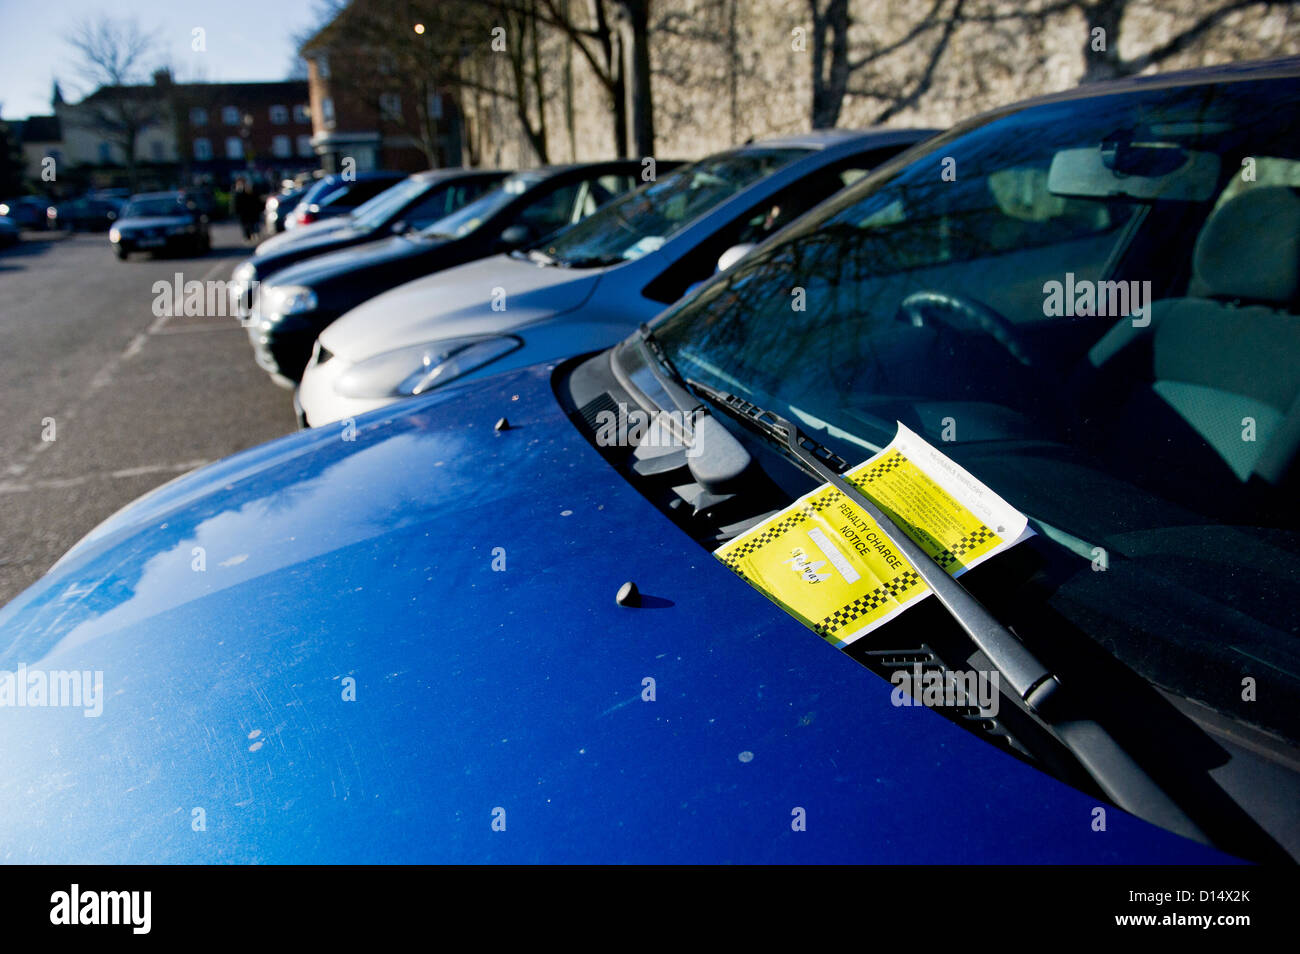 A parking ticket on a car windscreen. - Stock Image